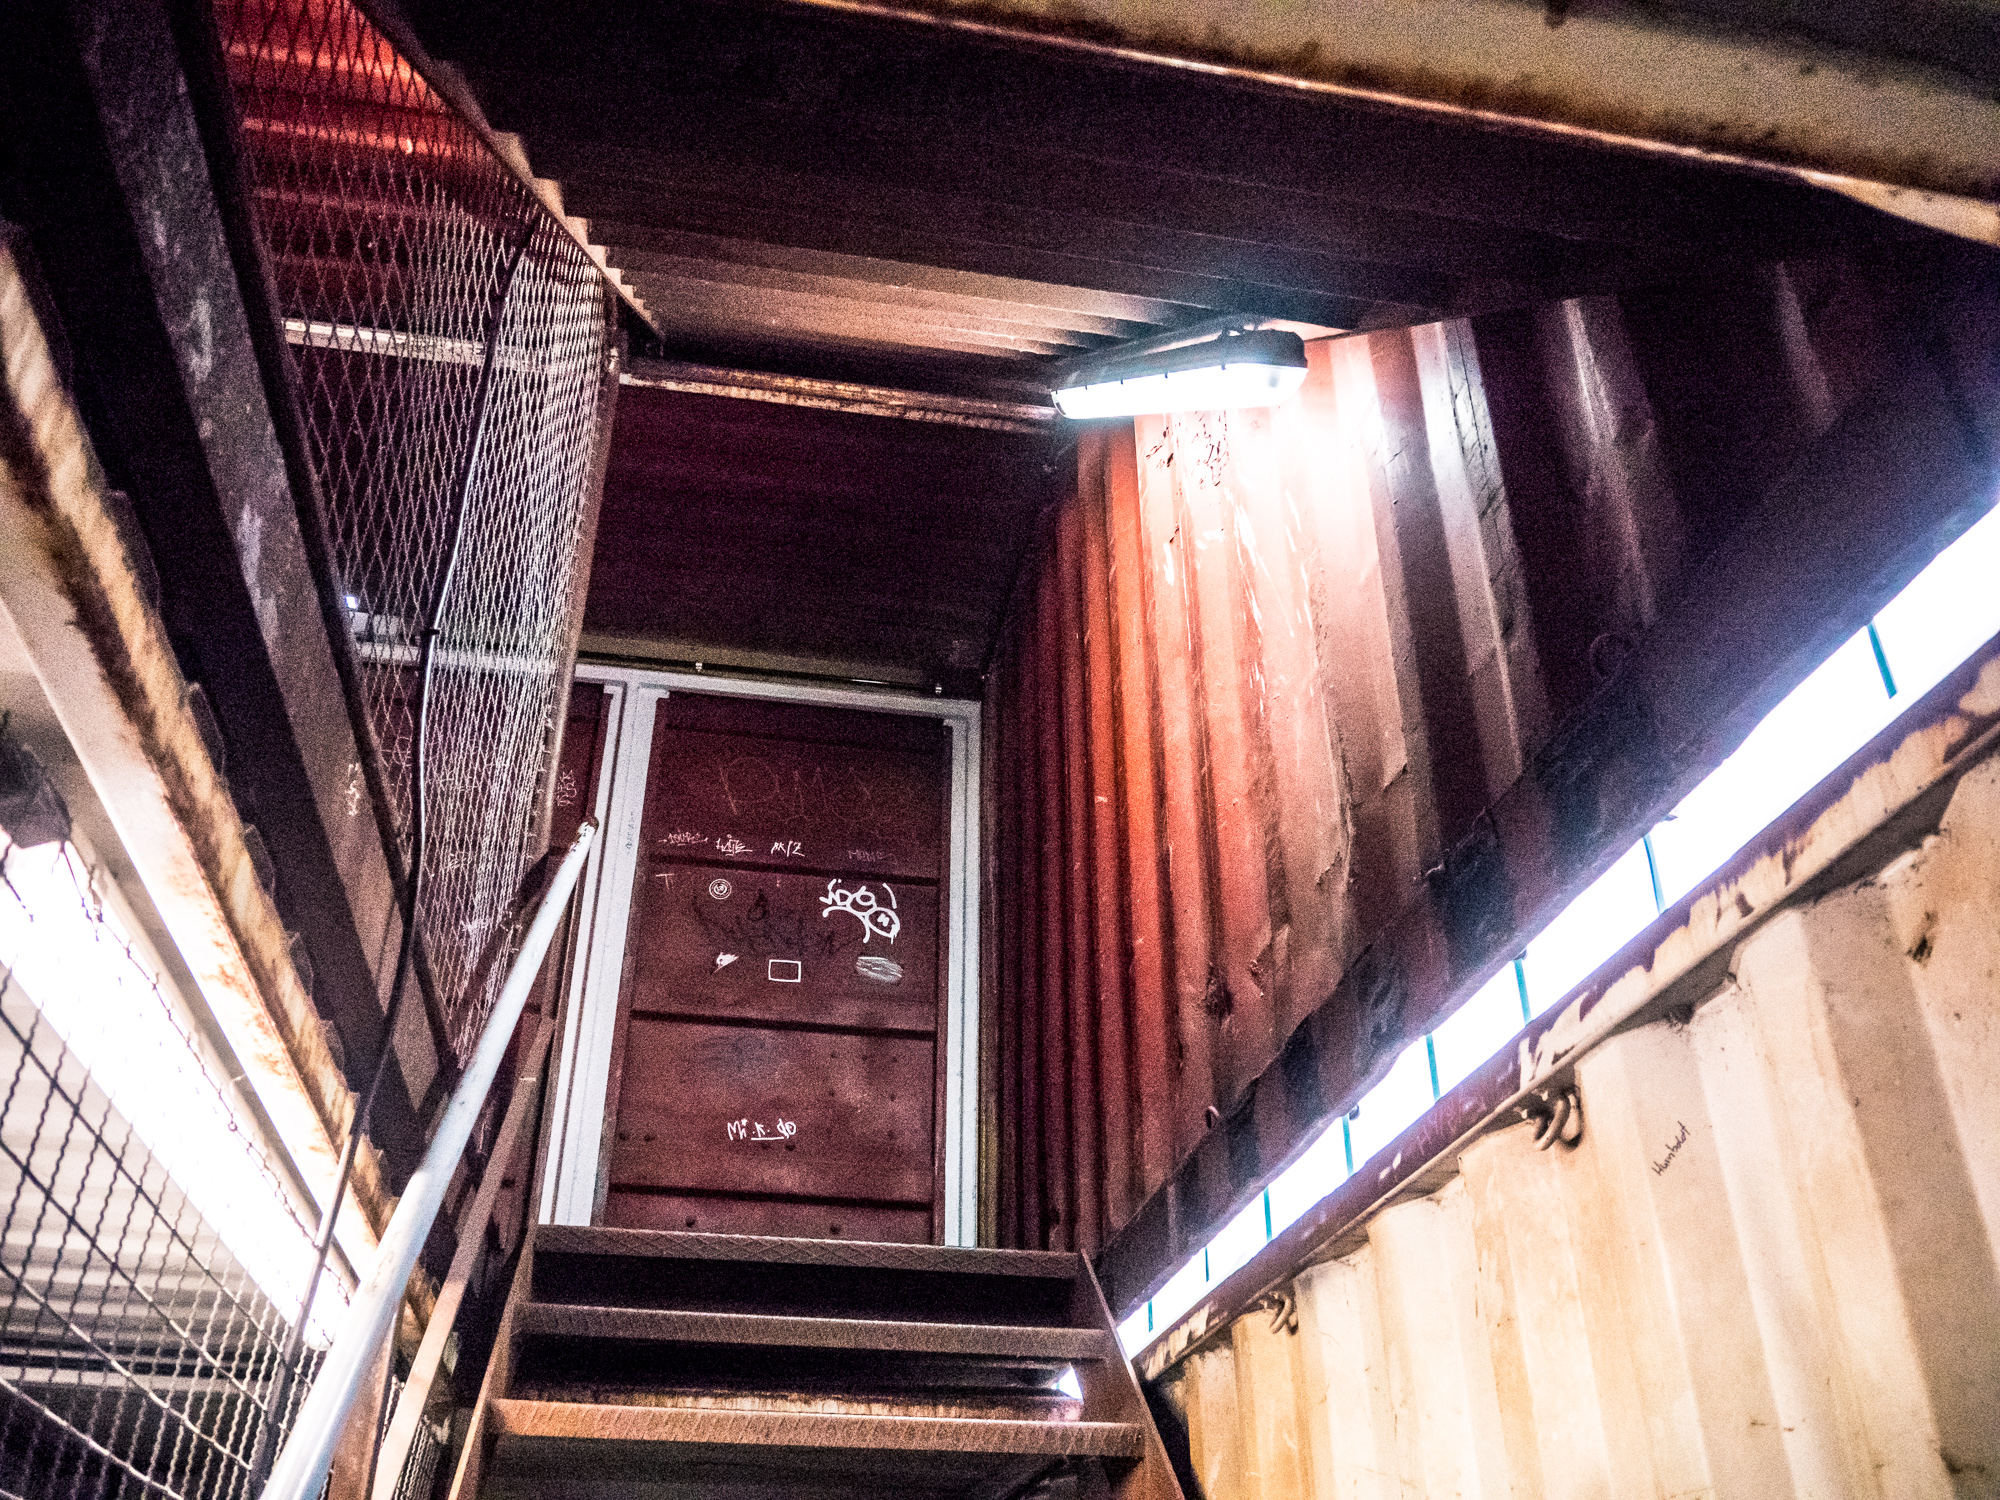 _1030451_container-inside.jpg